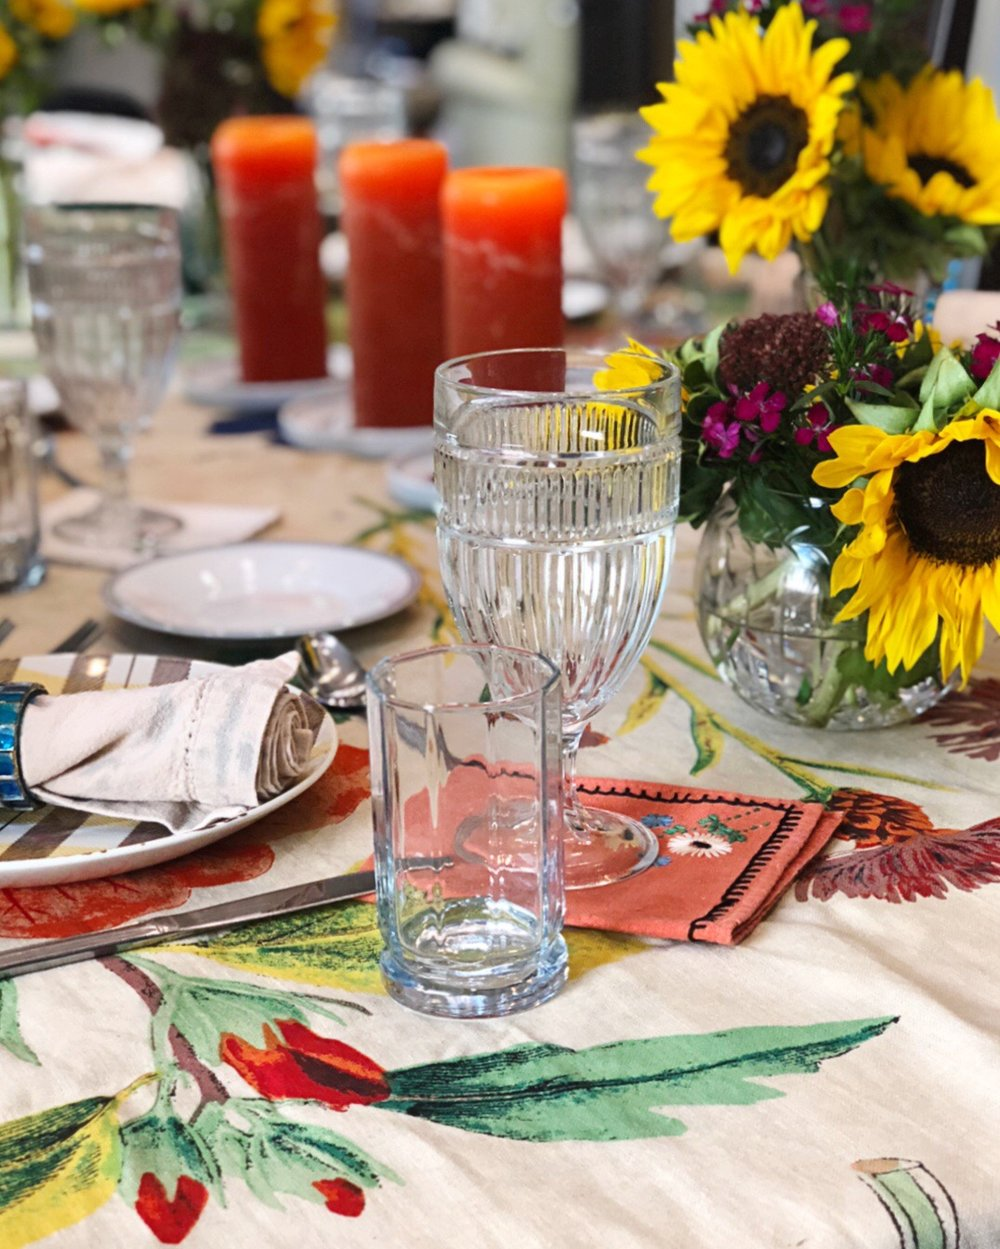 Designer tips on the perfect dinner party. Use fresh flowers to make your guests feel special. Mix and match your place settings to accommodate a large crowd. No matter what, have fun!